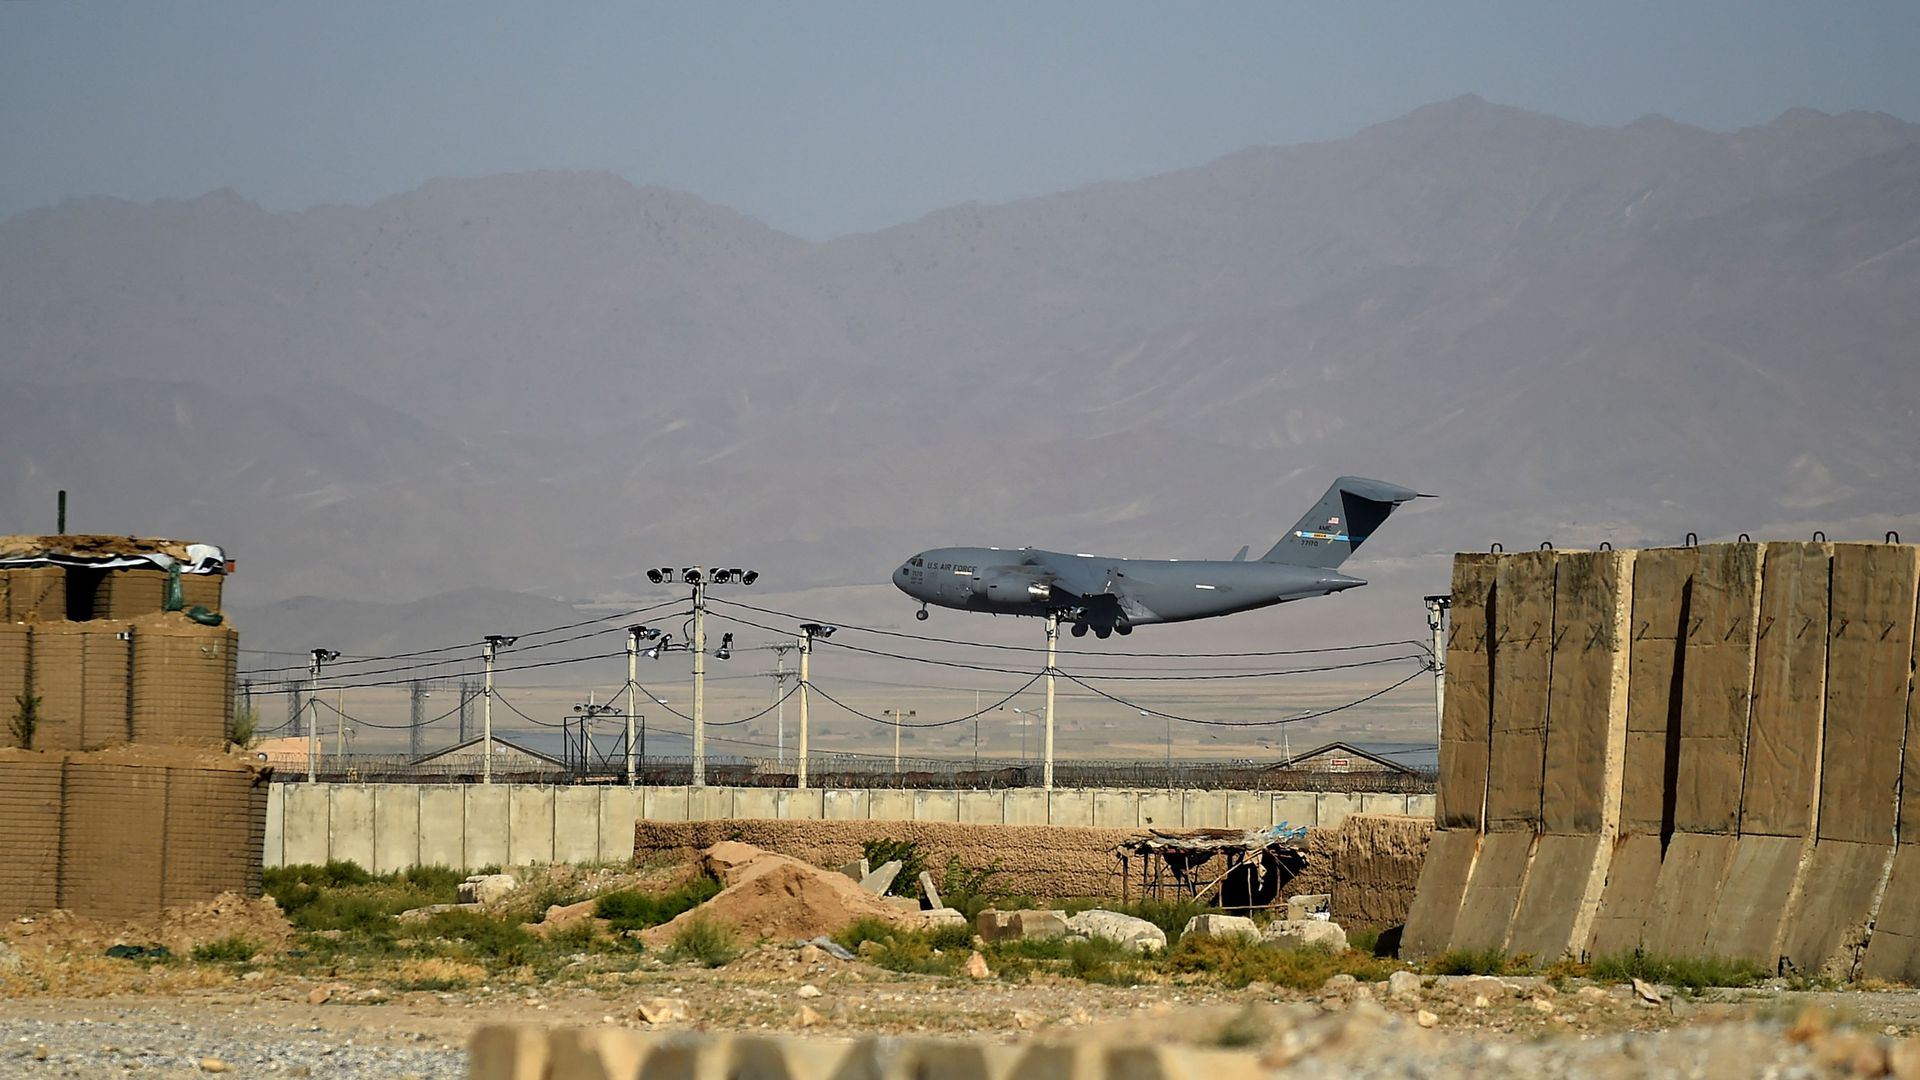 U.S. forces leave Bagram Air Base in Afghanistan after nearly 20 years - Axios